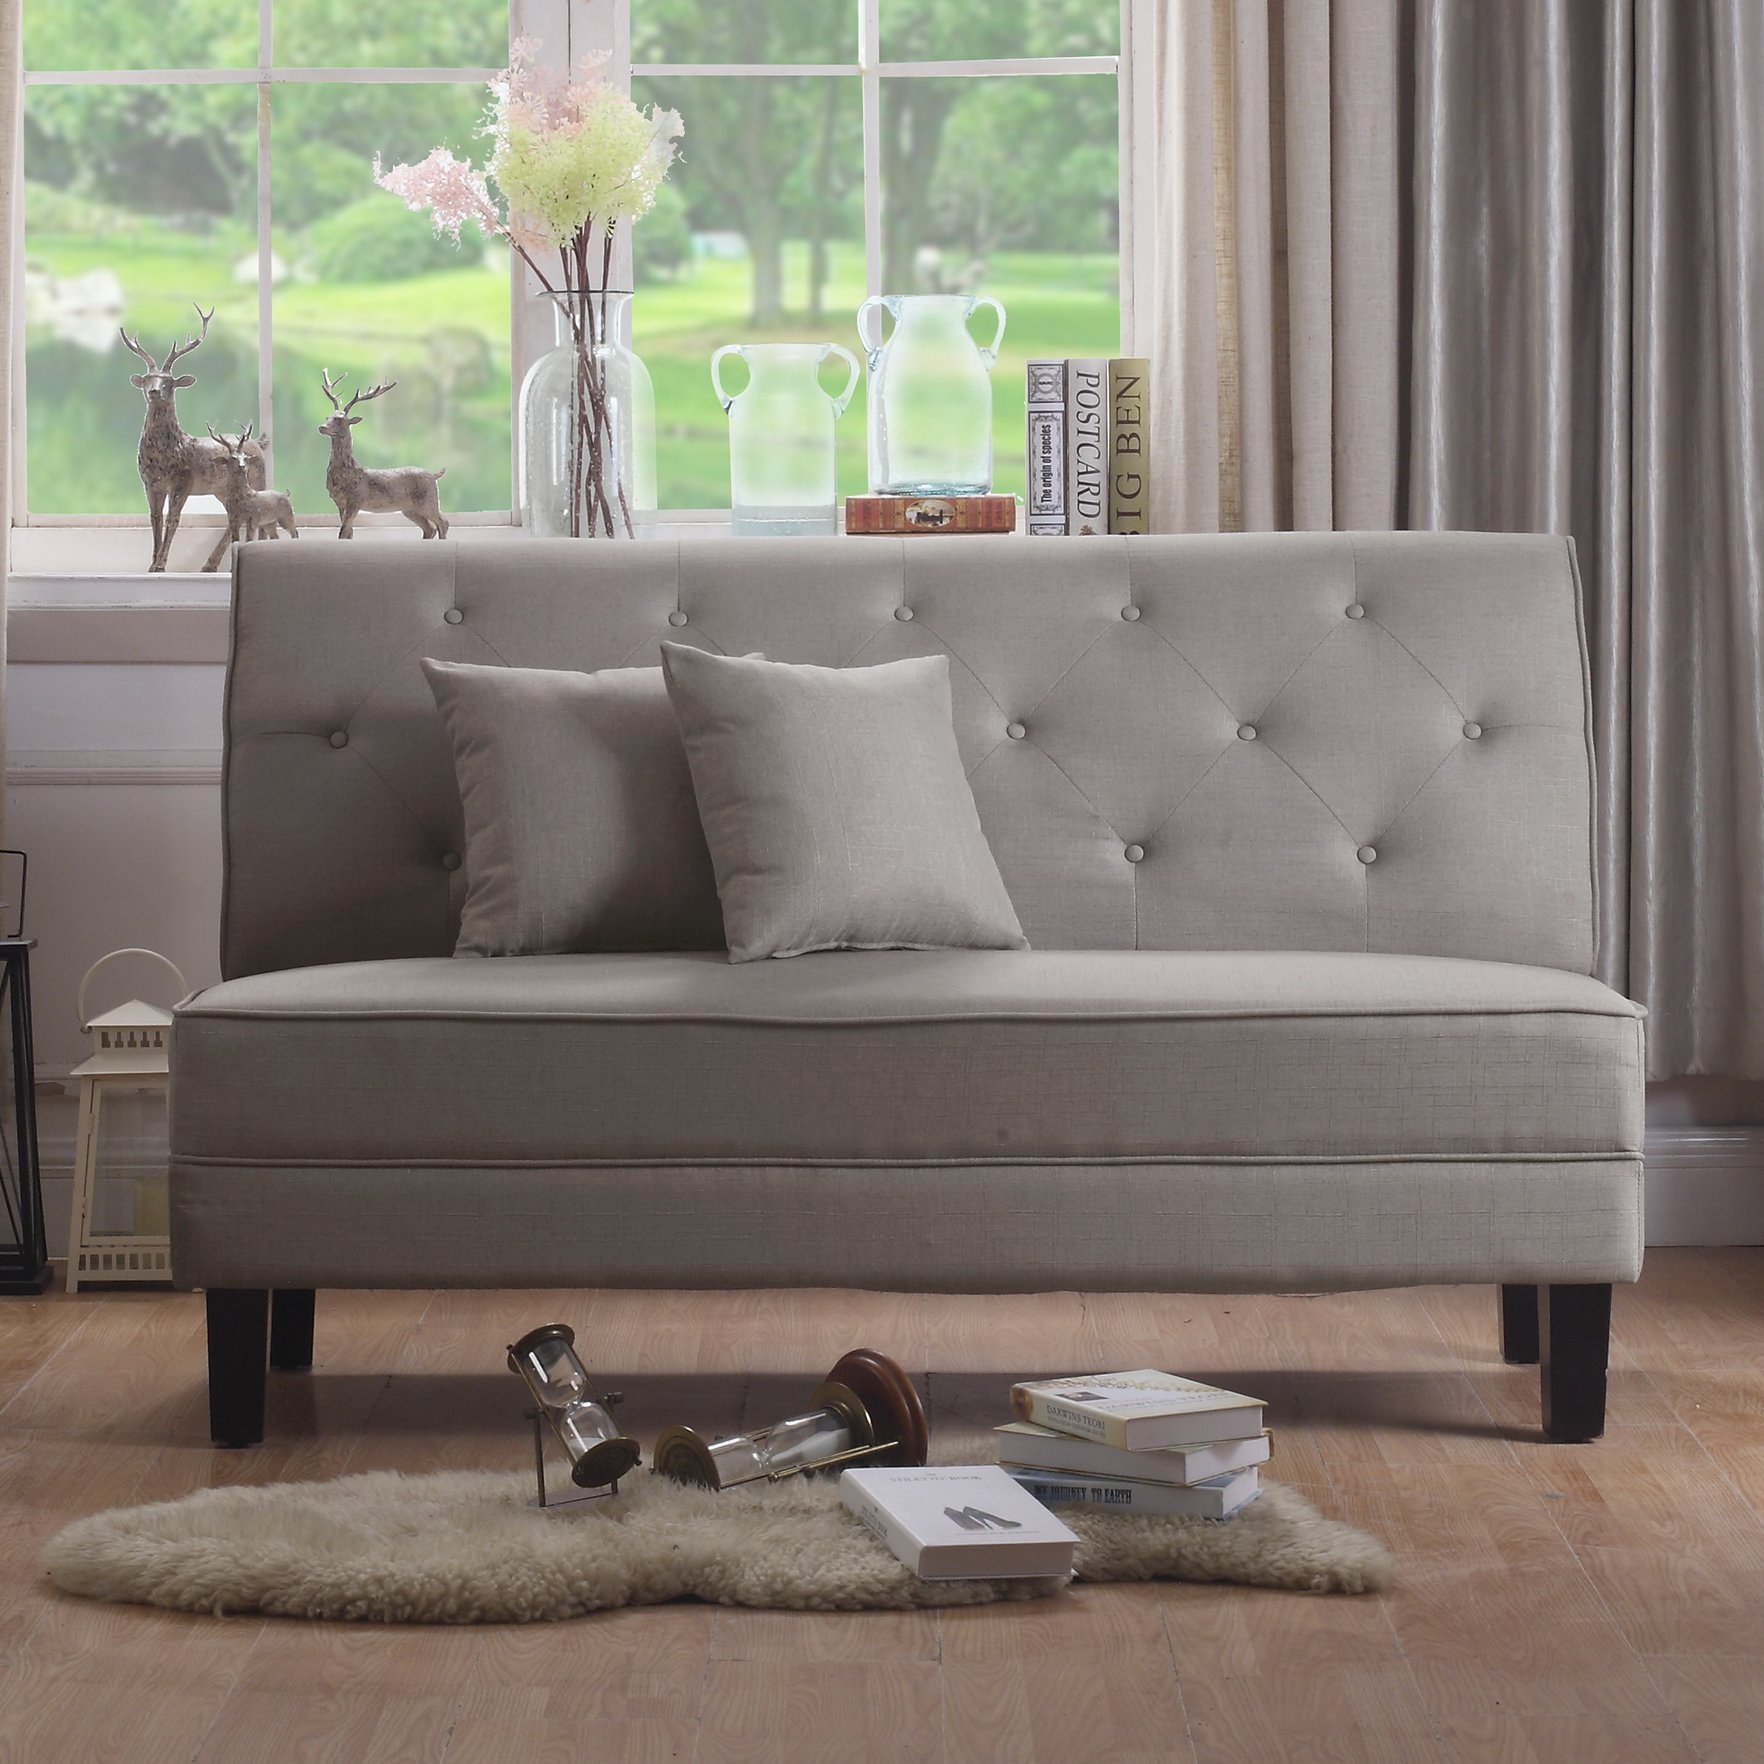 Alton Furniture Grana Tufted Loveseat, Multiple Colors by Fully Wind Co, Ltd.